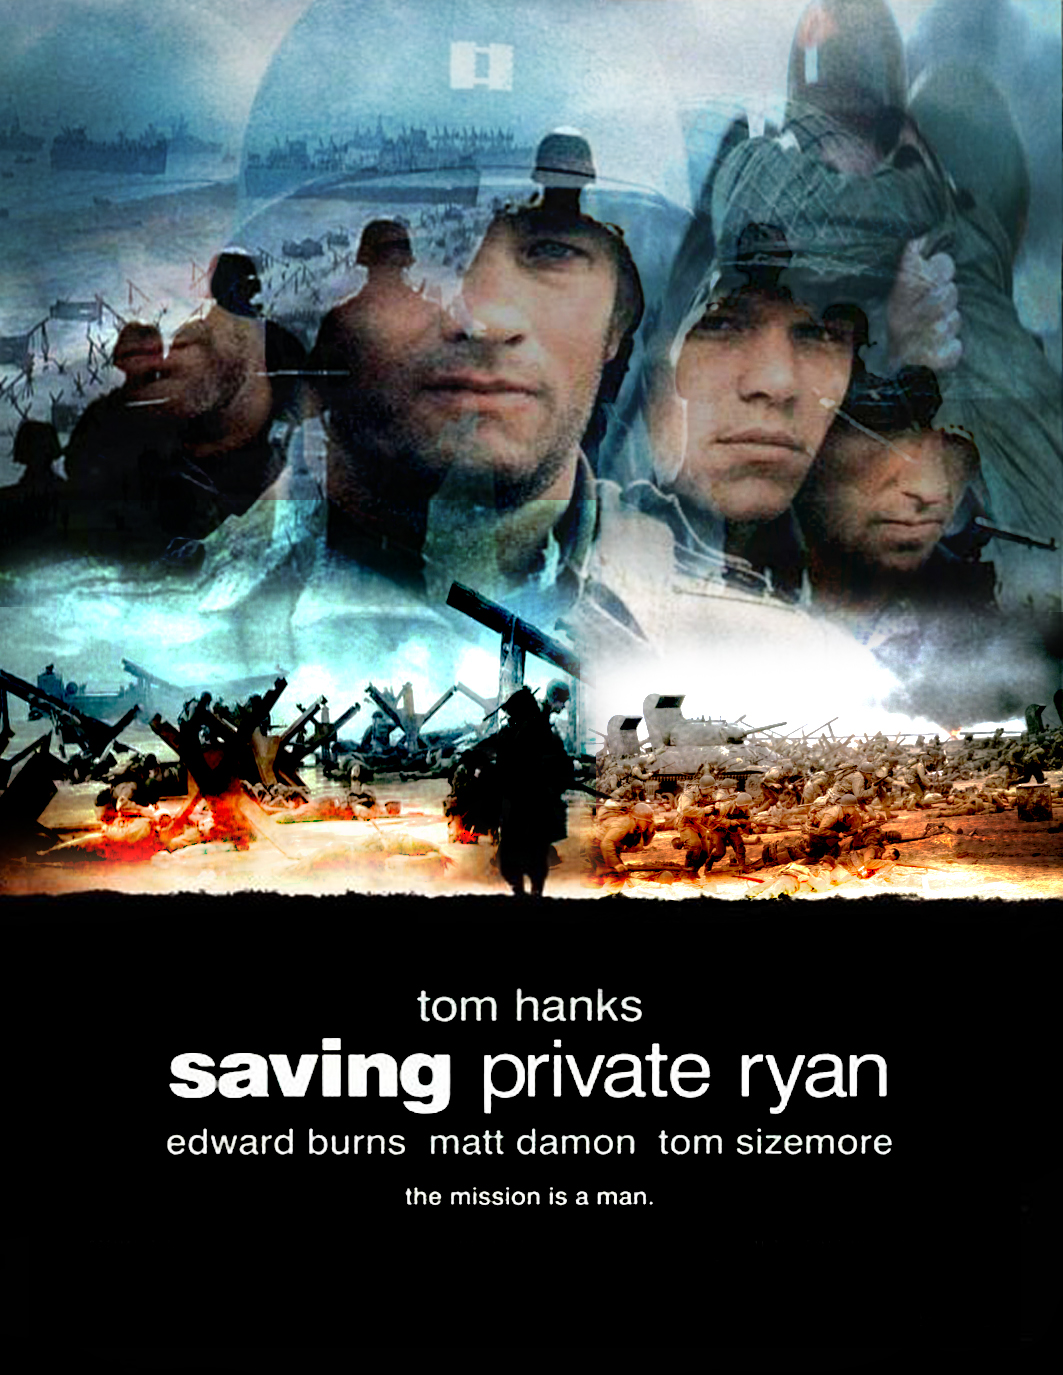 http://vignette2.wikia.nocookie.net/savingprivateryan/images/a/a5/Saving_Private_Ryan_by_Narusargent.jpg/revision/latest?cb=20140111171311